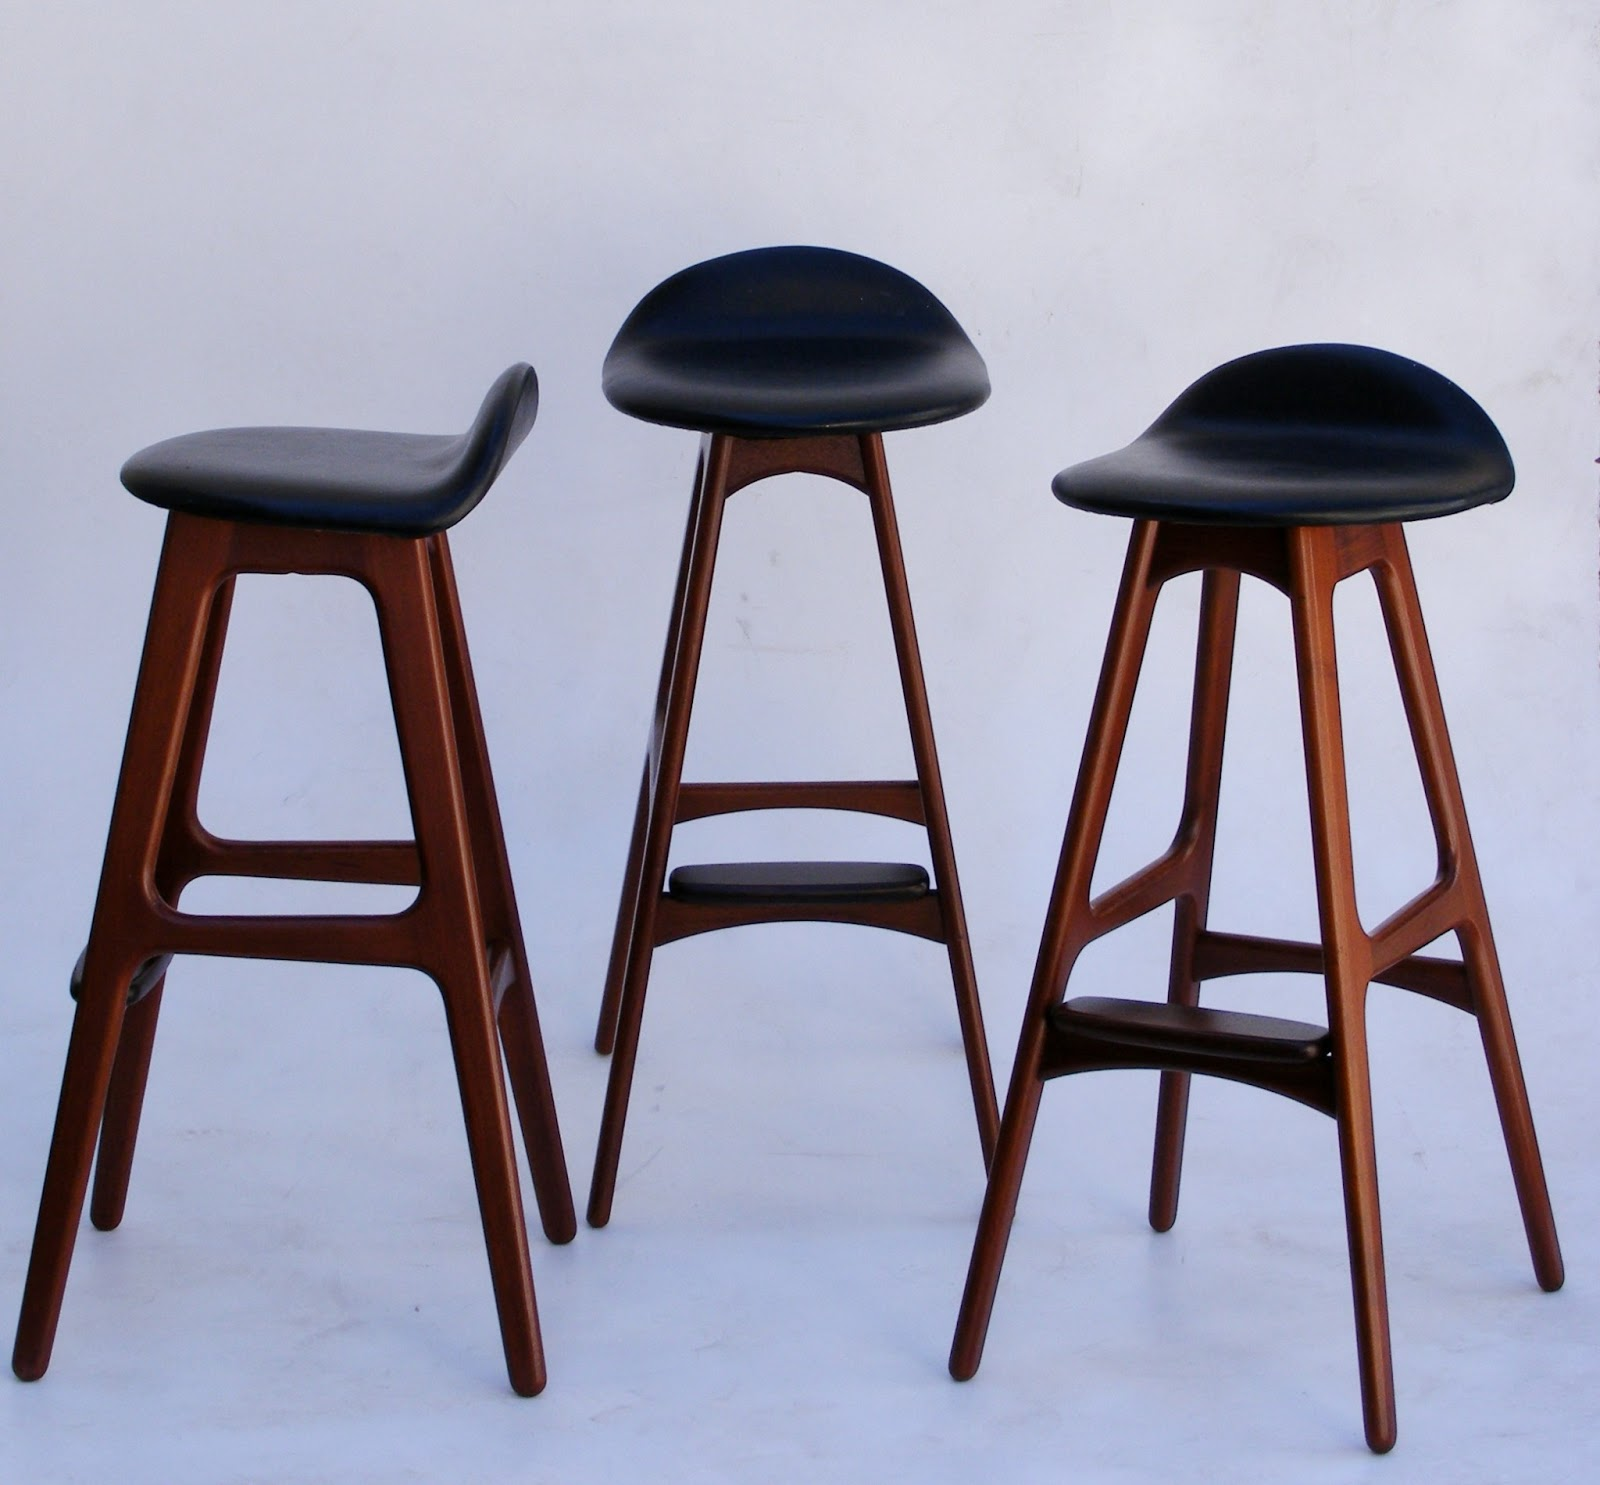 Kitchen Stools In South Africa: VAMP FURNITURE: This Weeks New Vintage Furniture Stock At